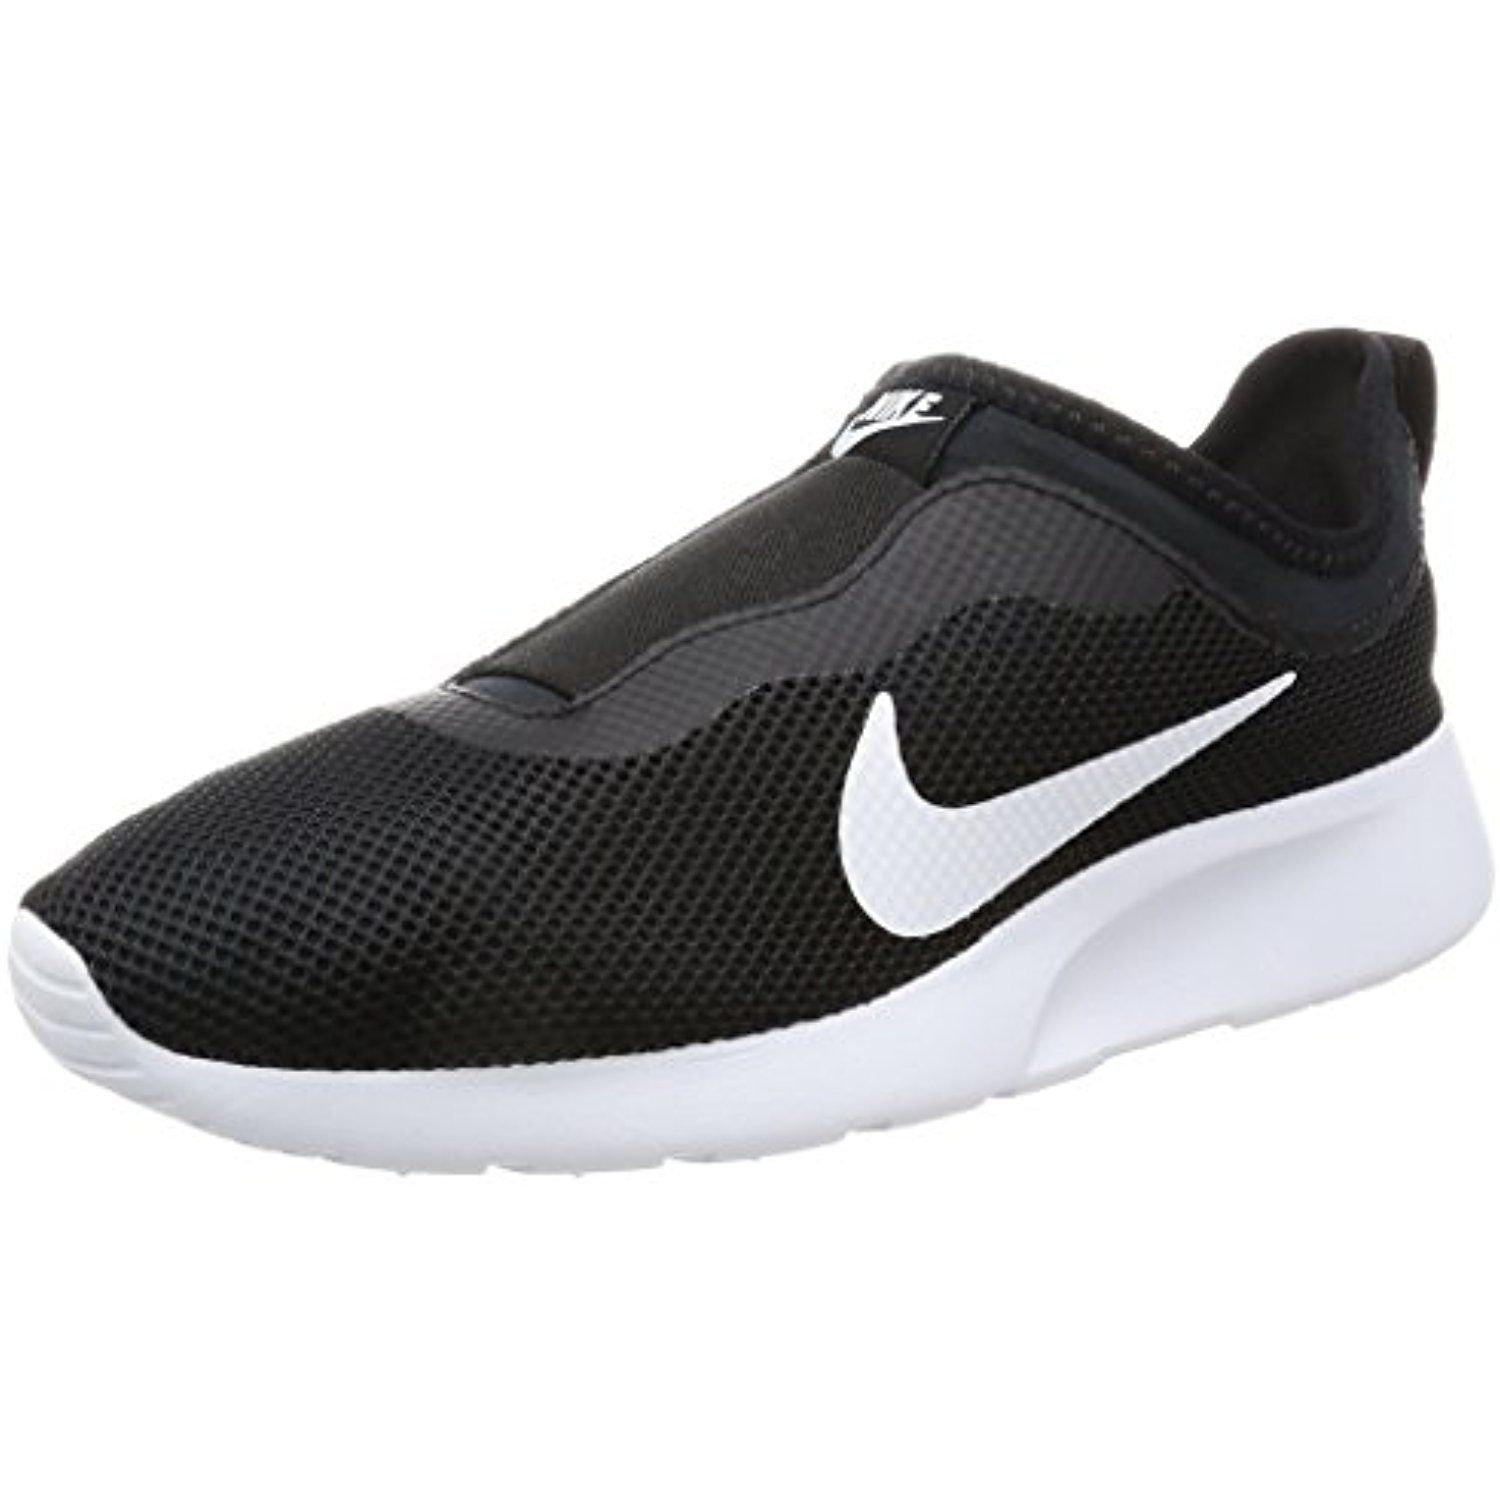 e8f405d541f4a Women s Tanjun Slip Casual Shoe     Click image for more details. (This is  an affiliate link)  Shoes